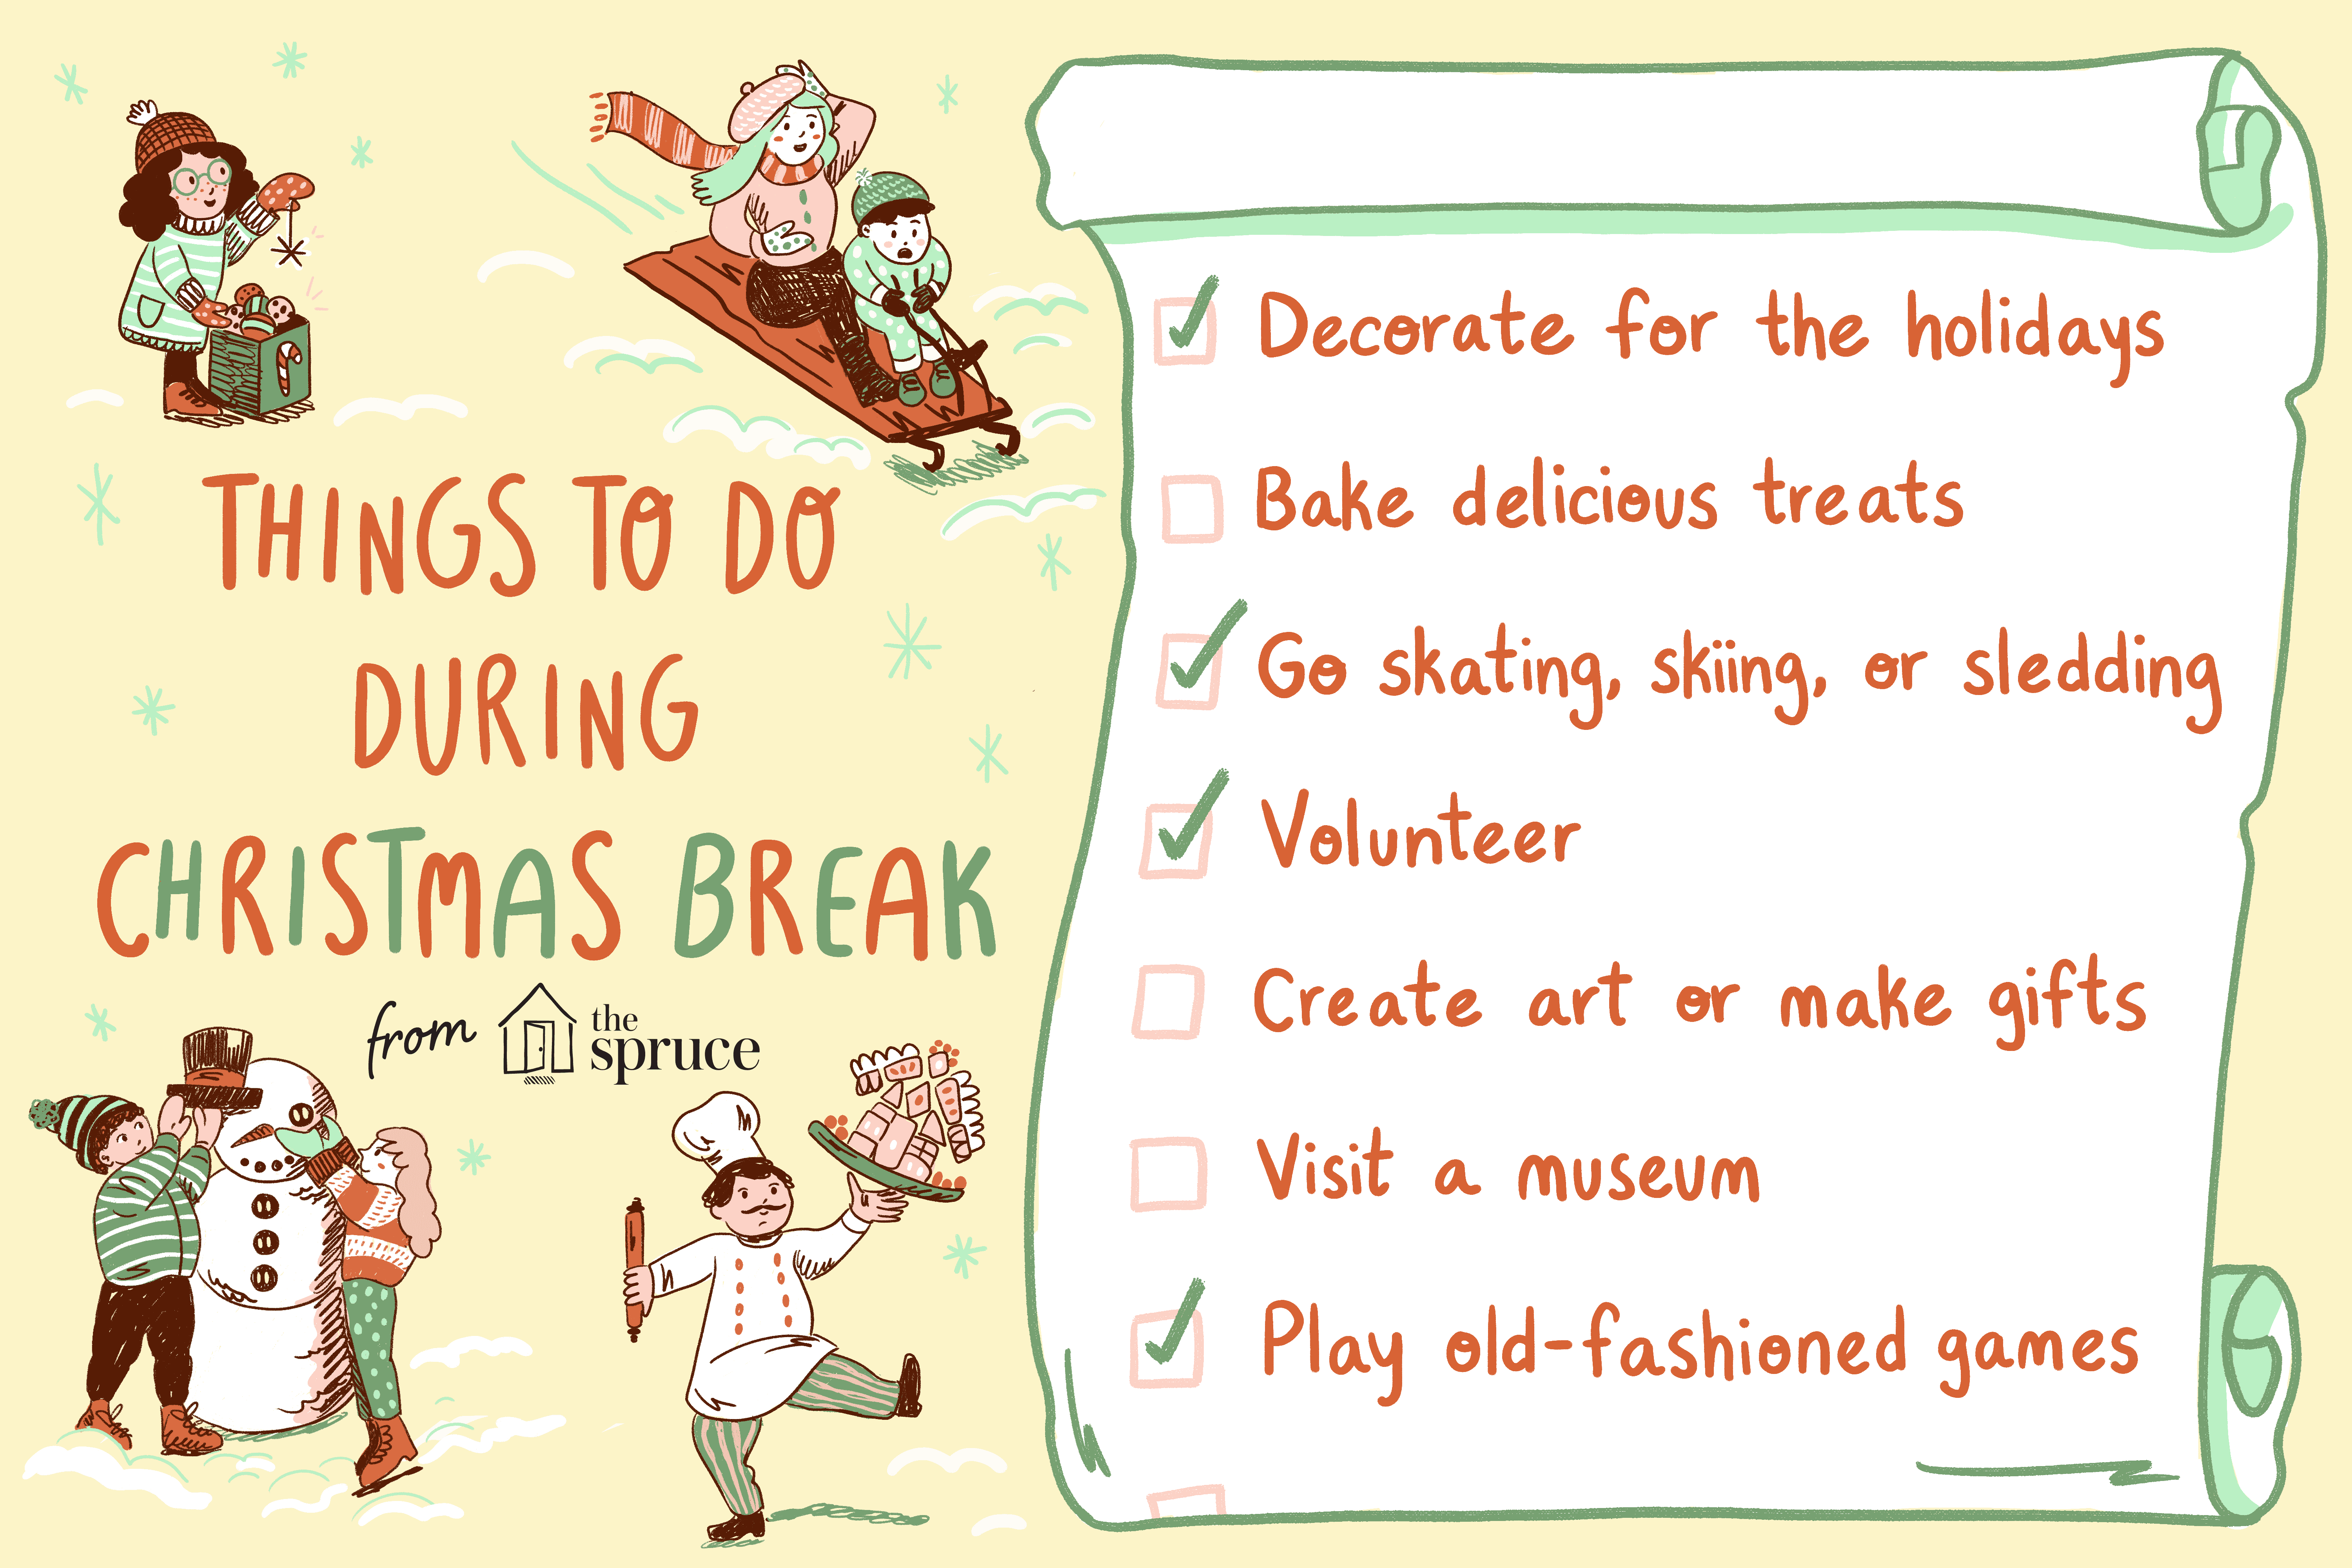 Christmas Break Things to Do - Holiday Activities and Ideas